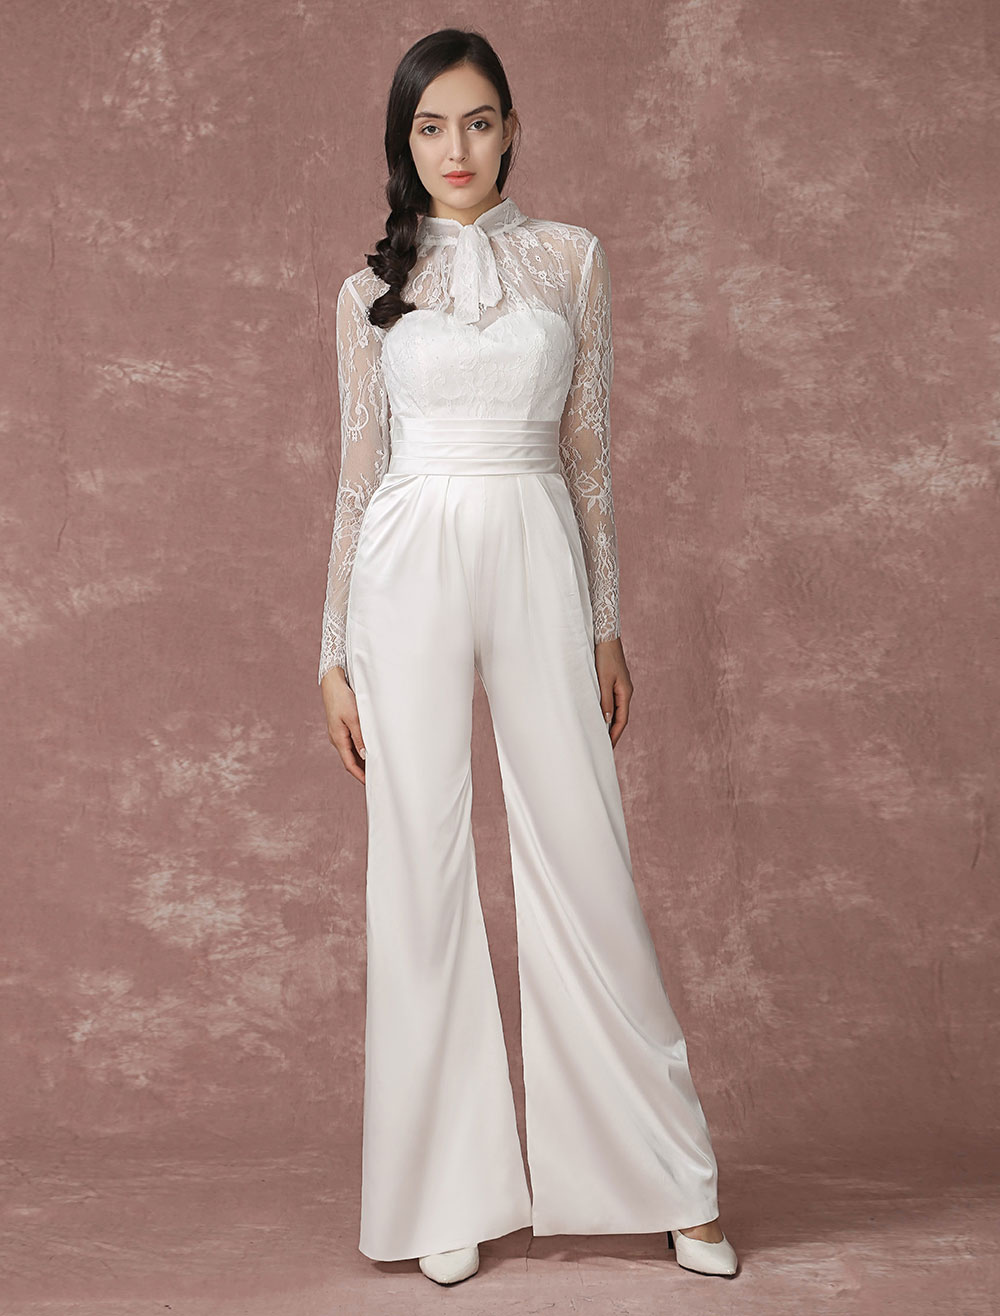 Lace wedding jumpsuits long sleeves bridal wedding pants - Jumpsuit hochzeit ...